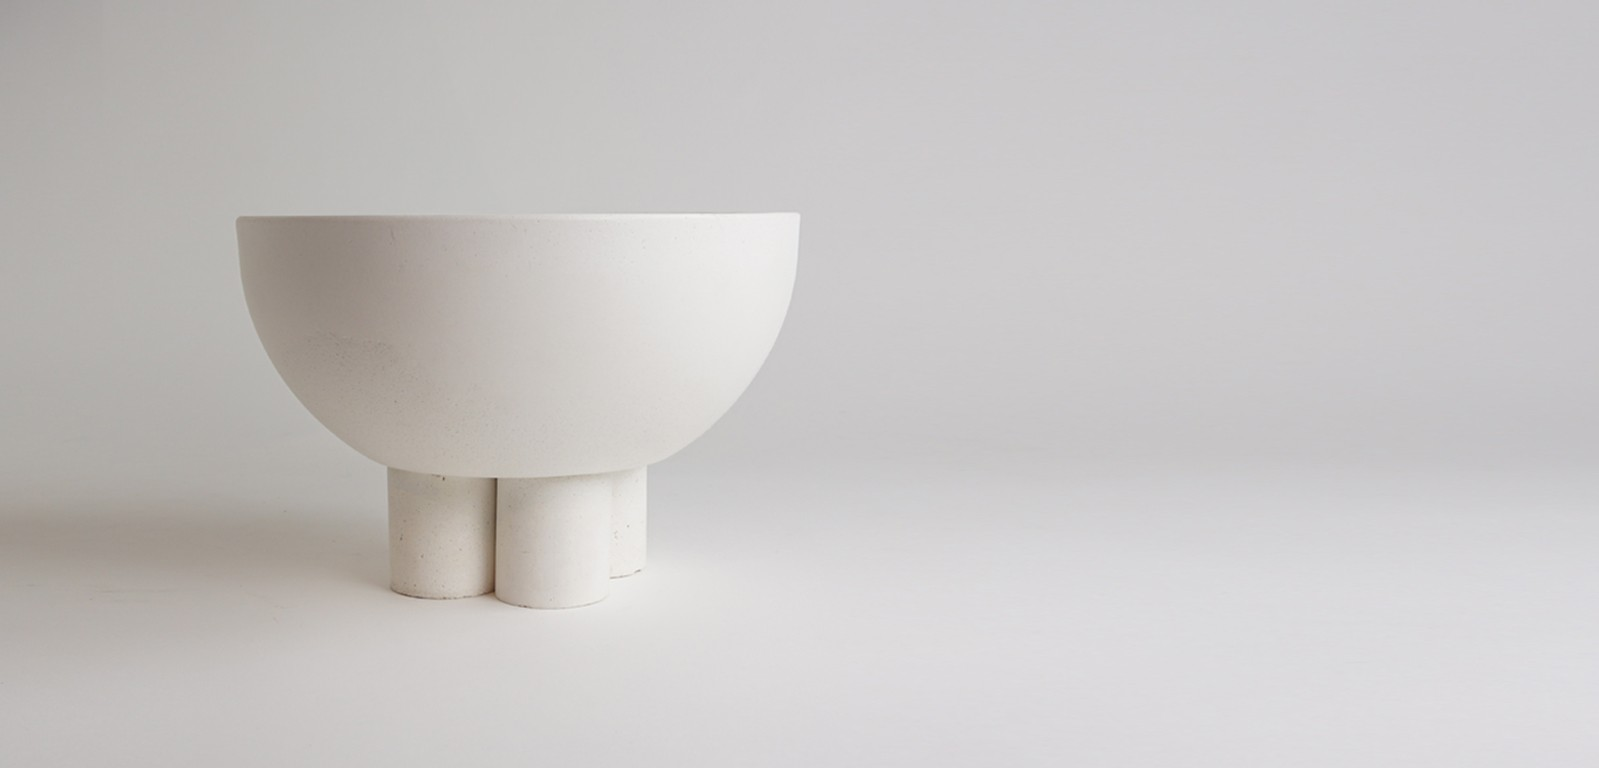 PILLAR-BOWL-sculptural-vessel-pot-centerpiece-white-concrete-luxury-alentes